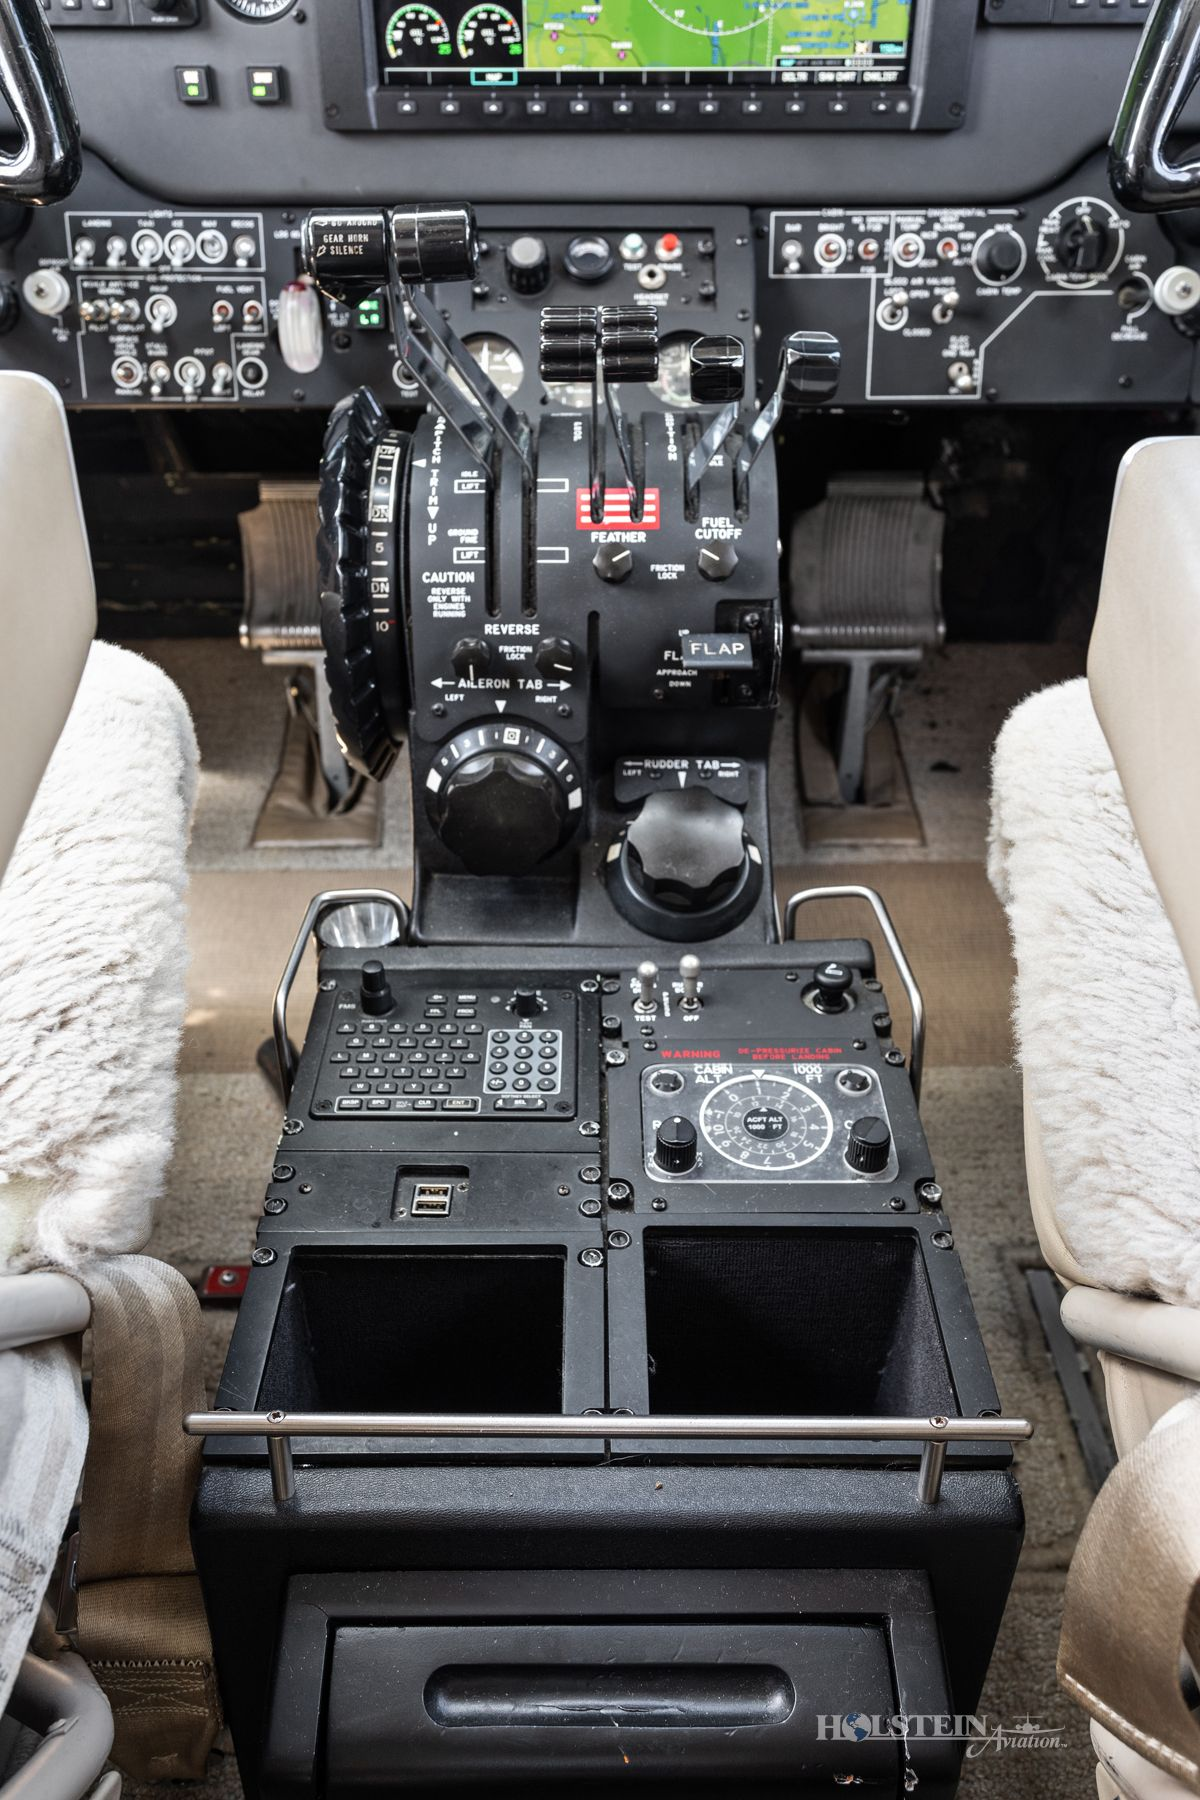 1998 King Air C90B - LJ-1504 - N632MT - Cockpit Pedestal RGB.jpg